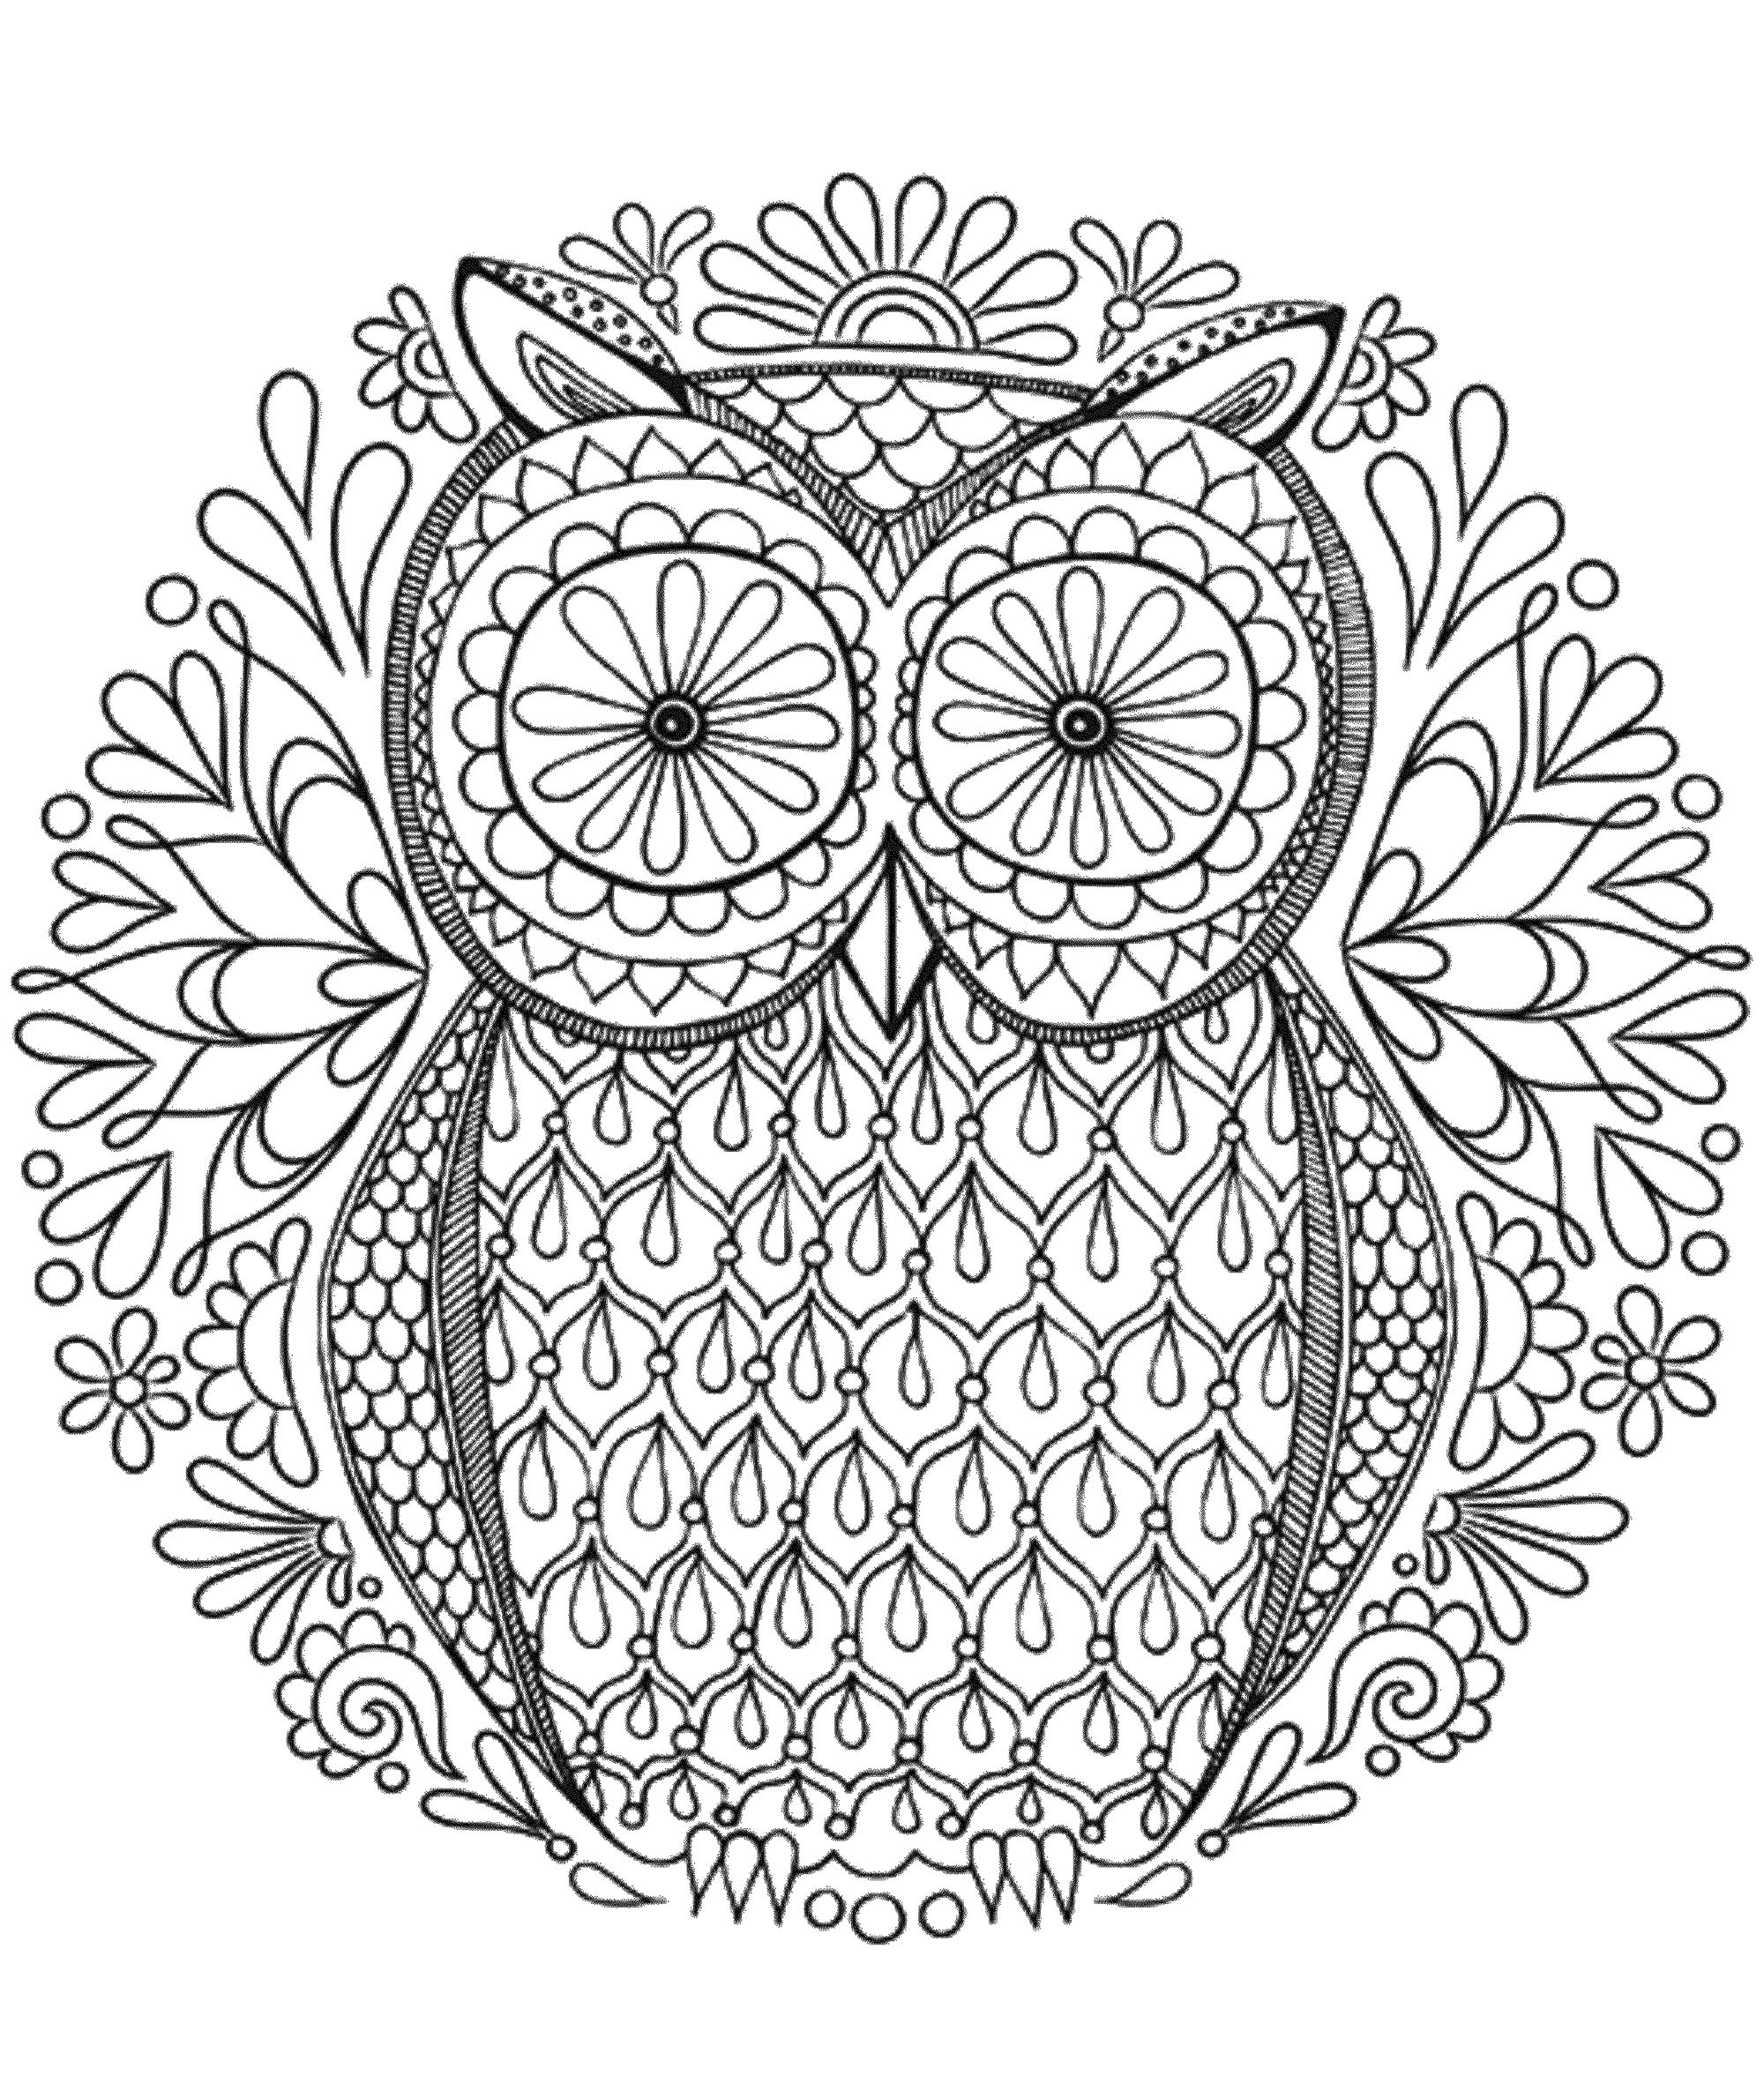 mandala pictures to color free printable mandala coloring pages for adults best pictures color to mandala